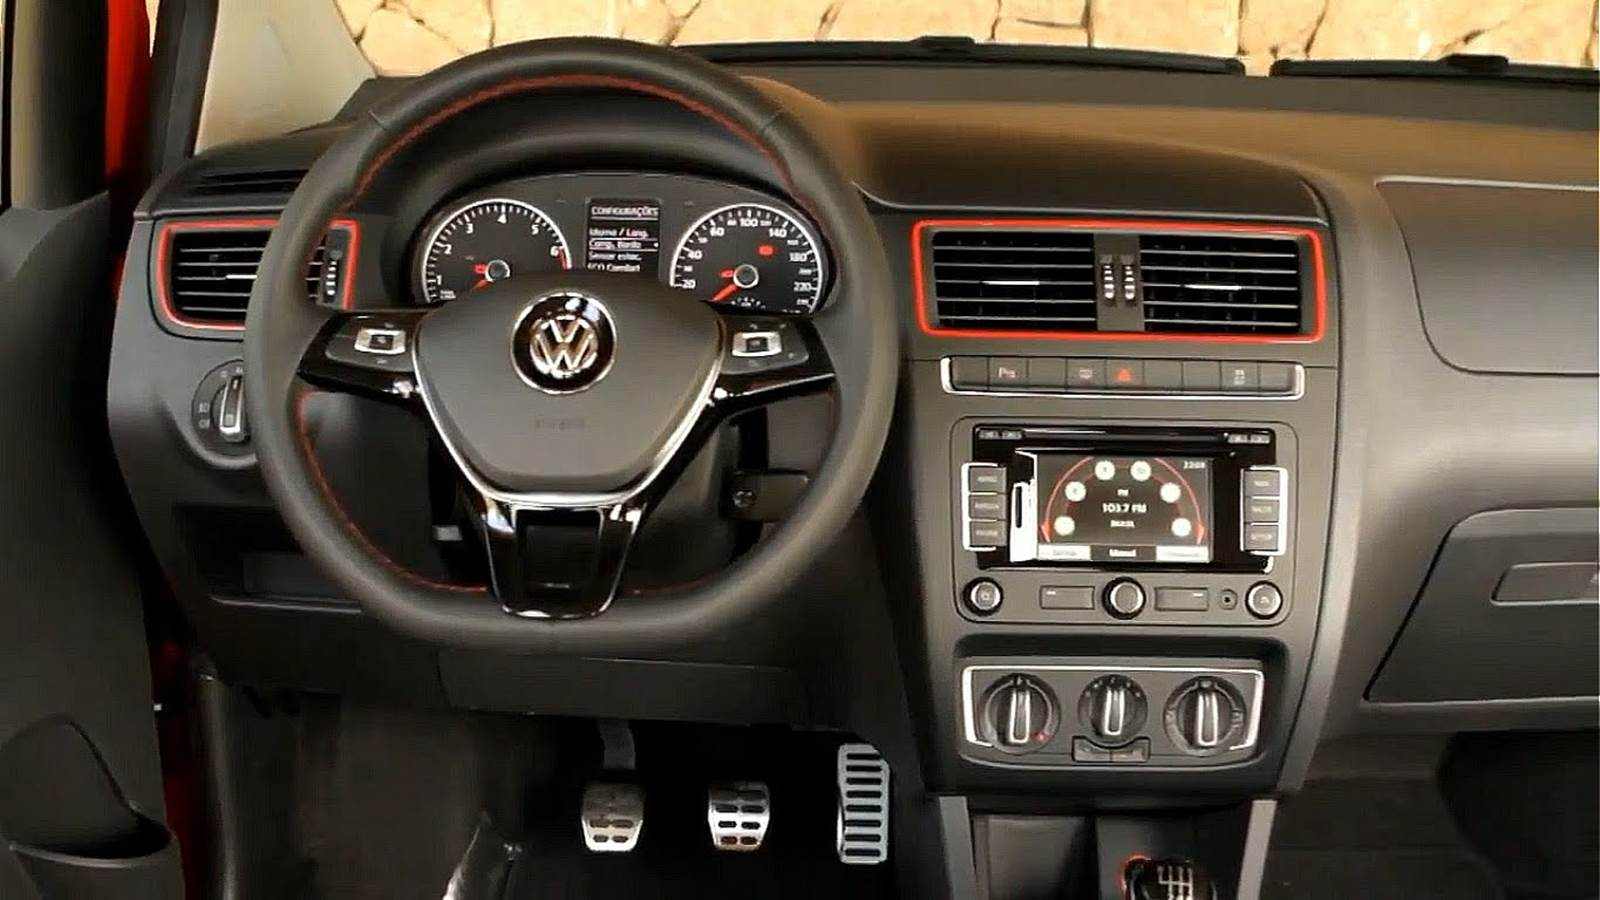 Novo VW Fox 2015 - Pepper